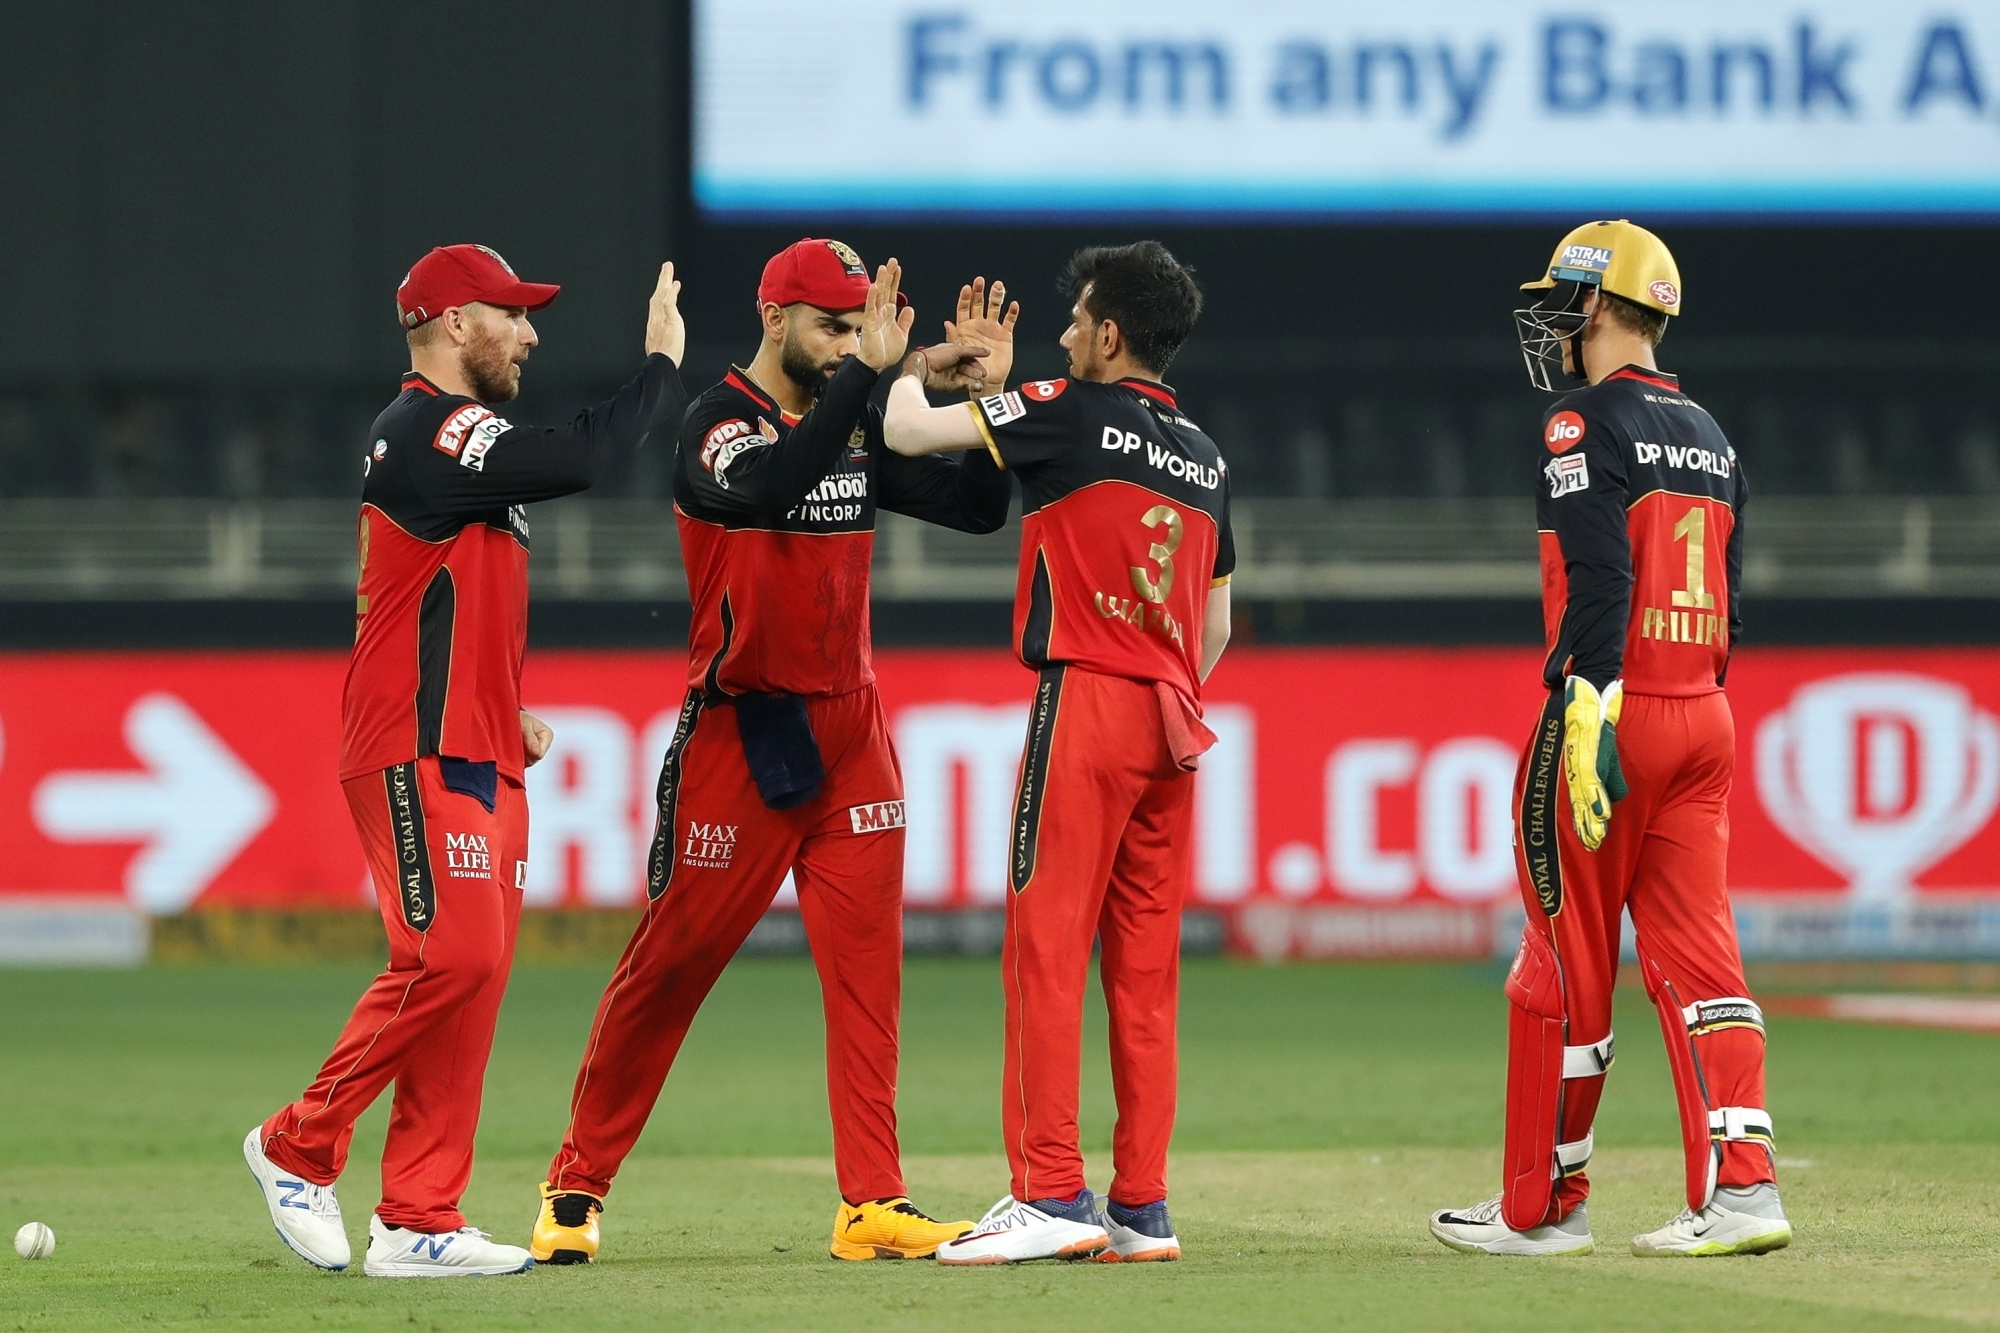 Chahal was outstanding with the ball for RCB | IANS